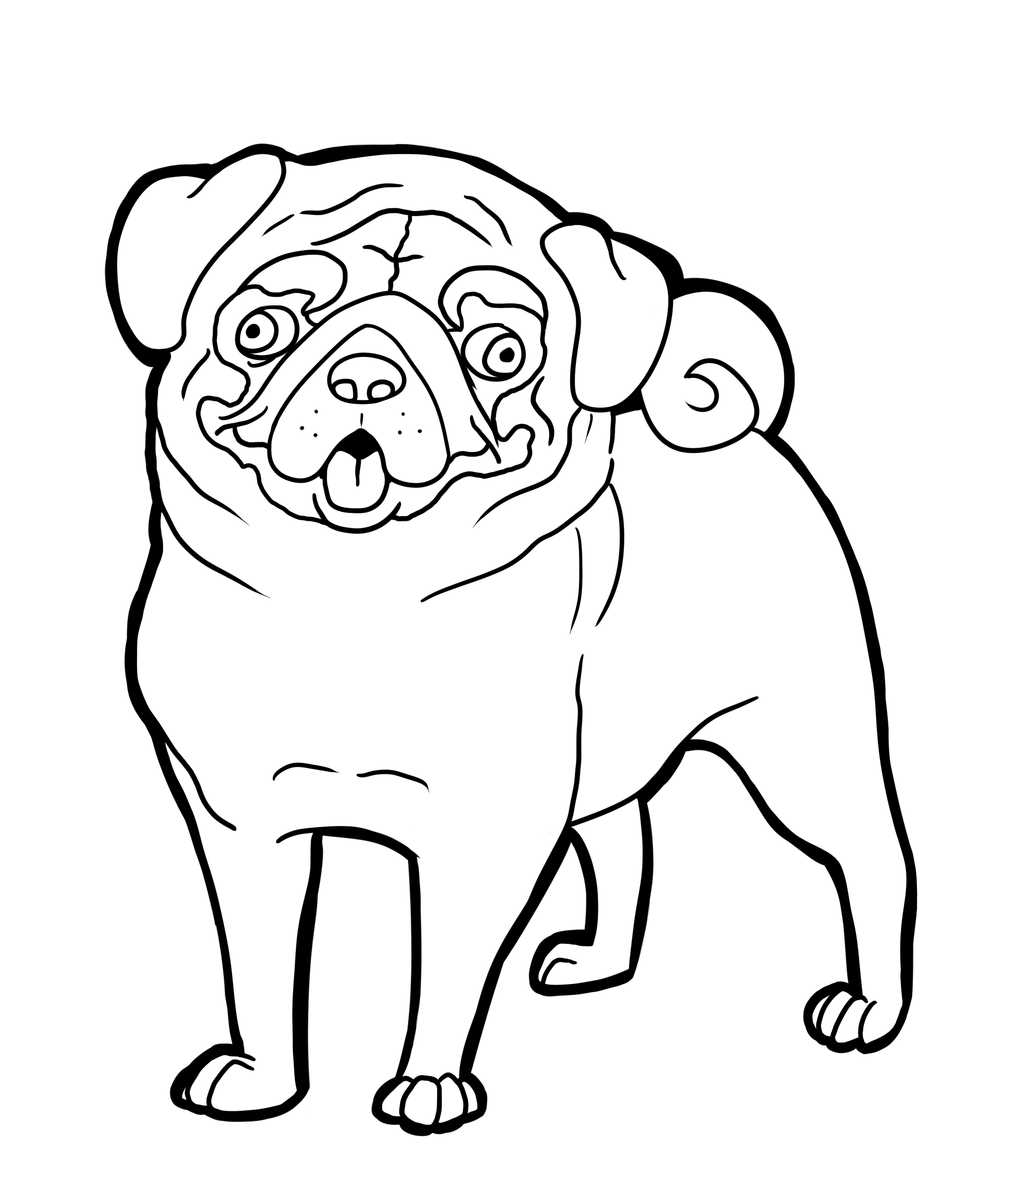 dog coloring pictures printable pug coloring pages to download and print for free printable coloring dog pictures